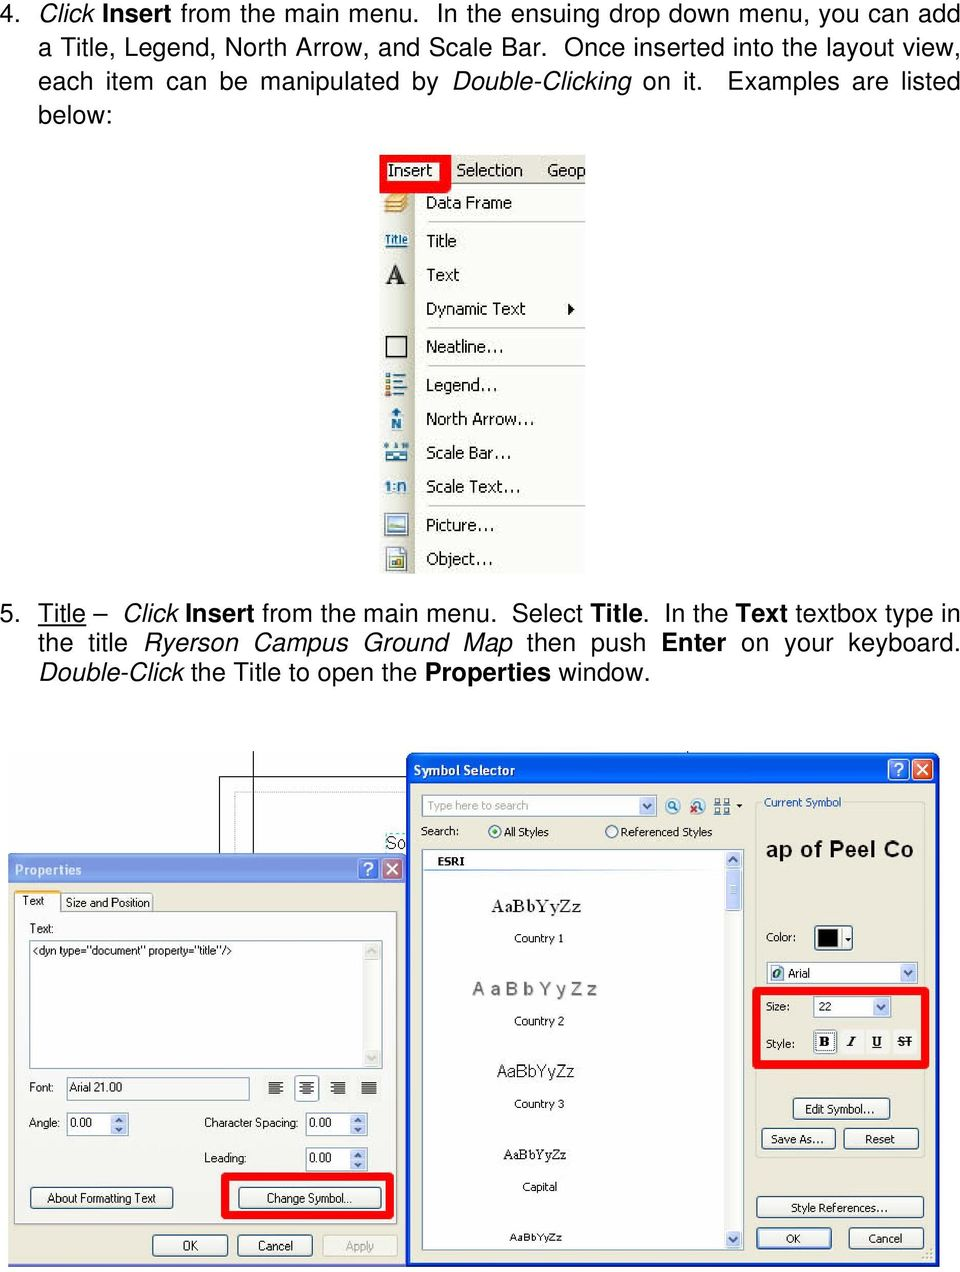 Once inserted into the layout view, each item can be manipulated by Double-Clicking on it.